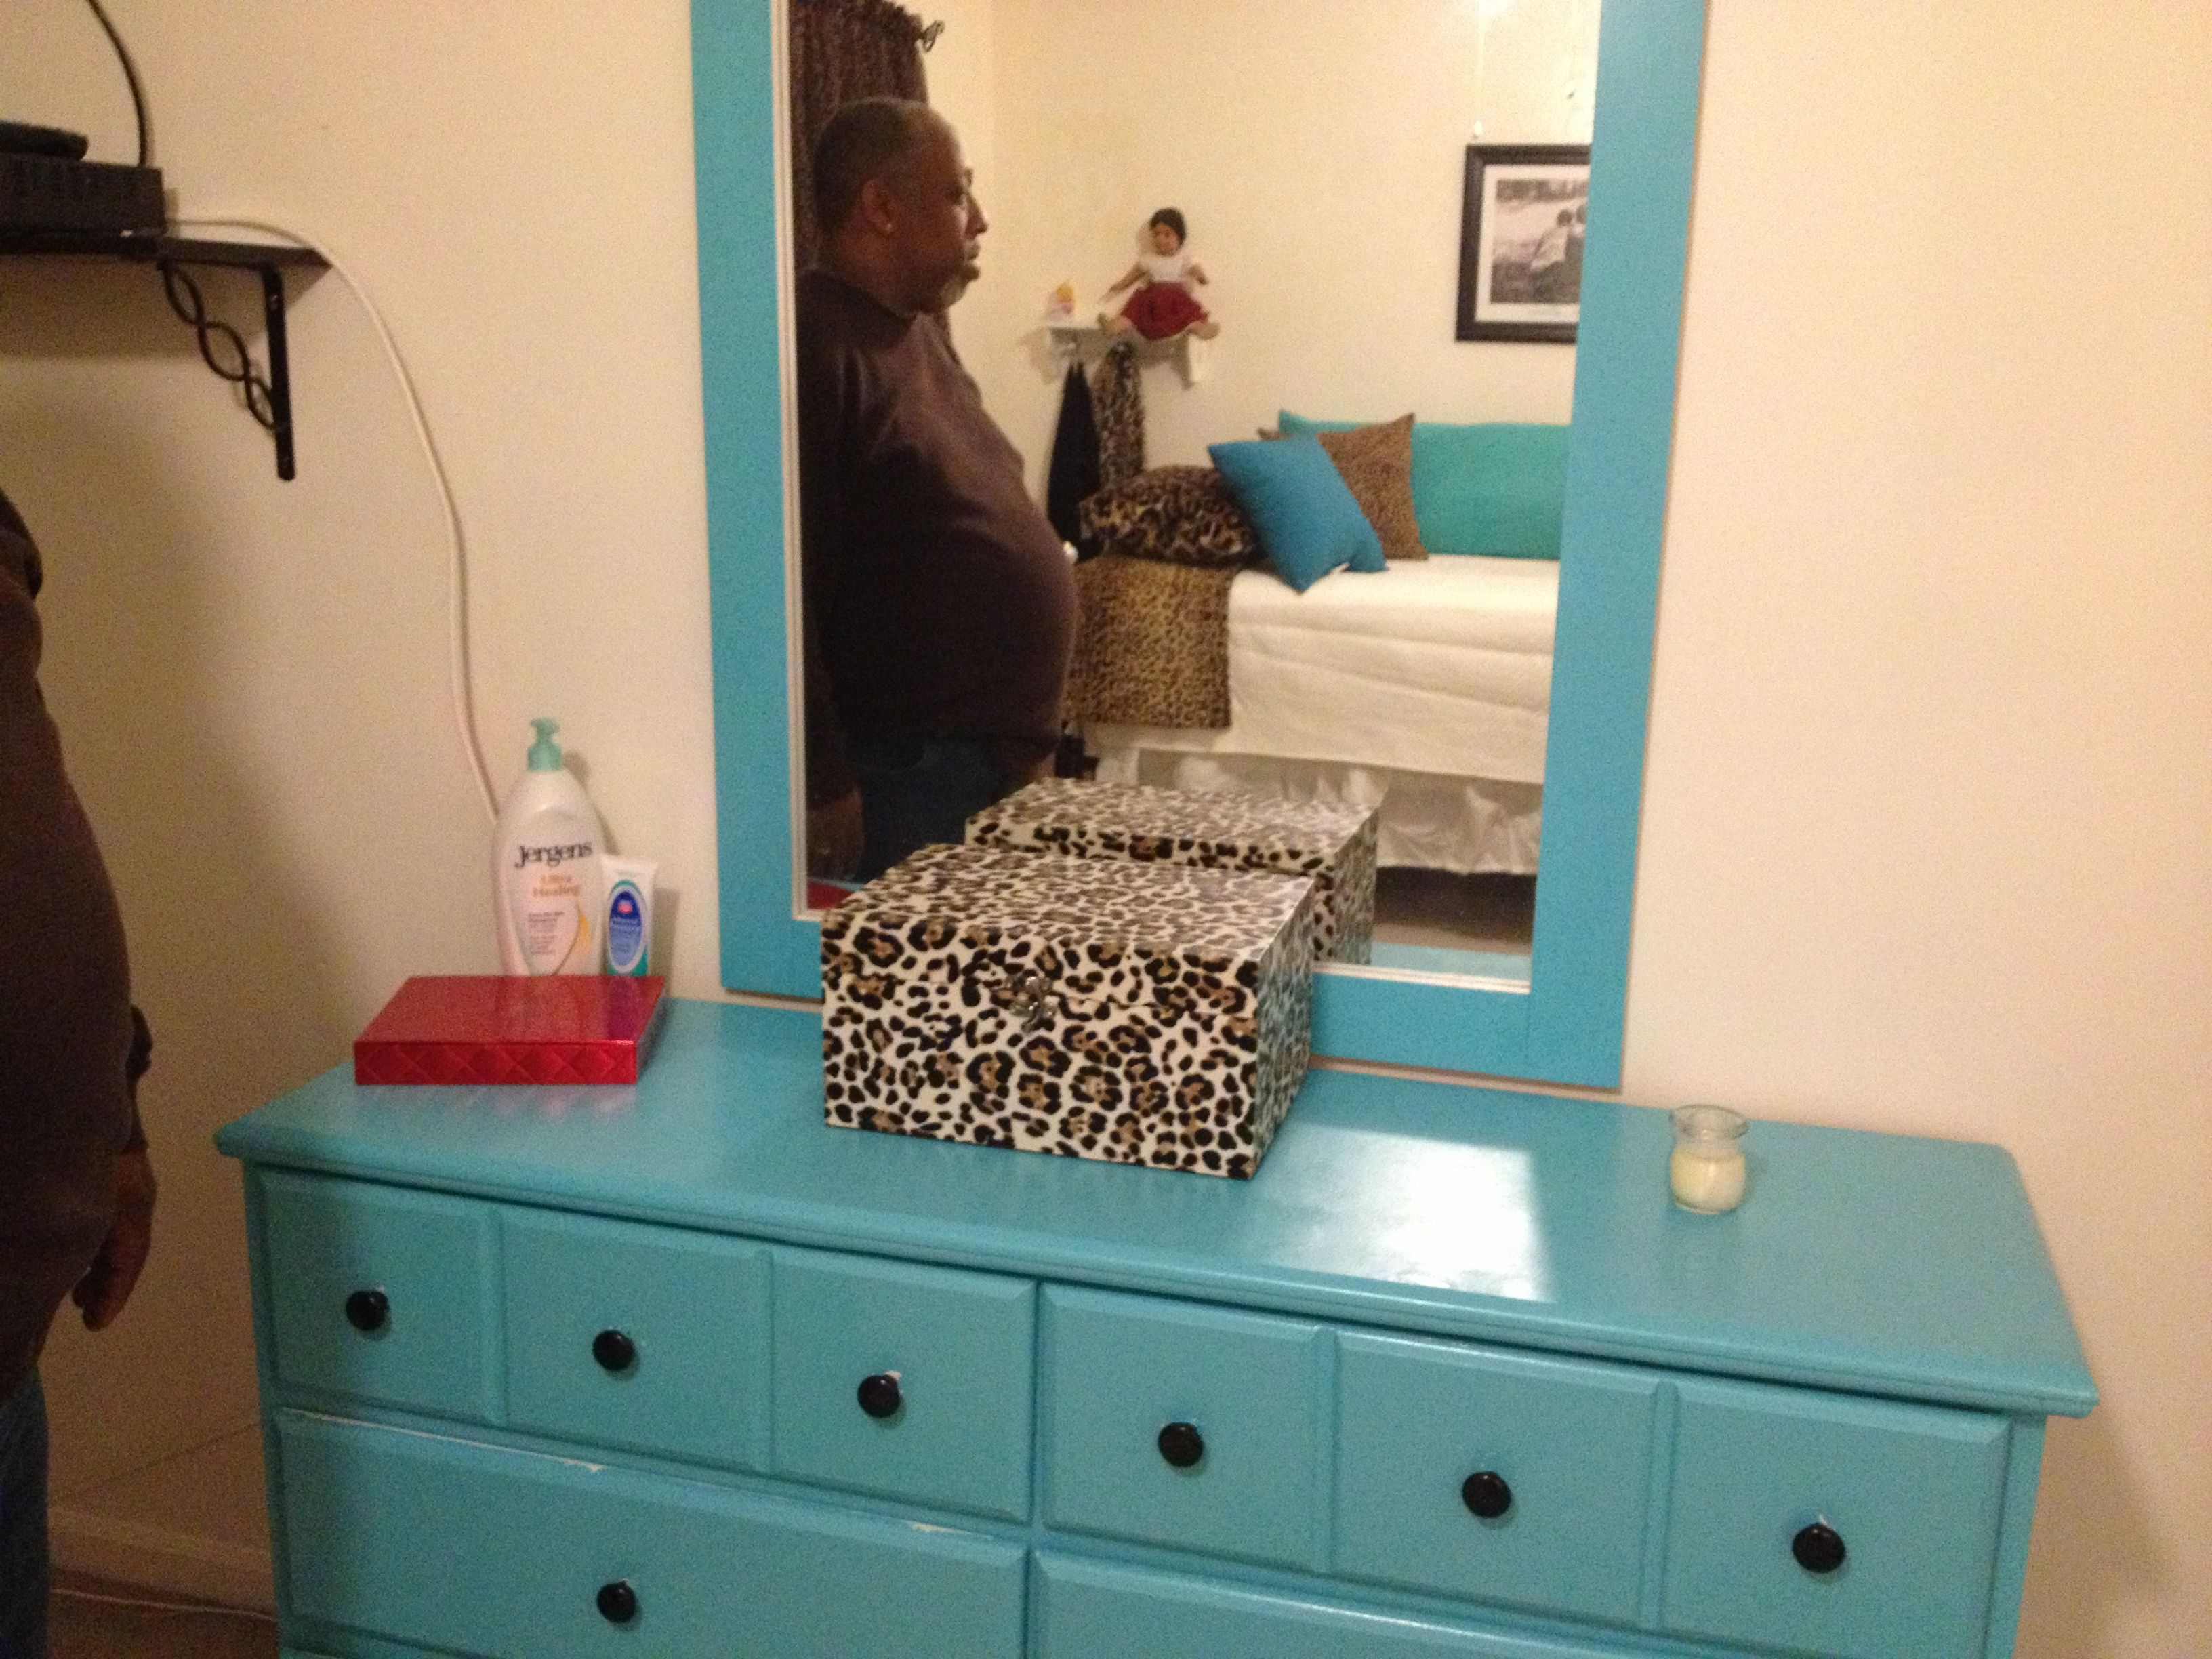 Teal Bedroom Decorating Cheetah And Teal Bedroom Decorating Ideas Pinterest Teal